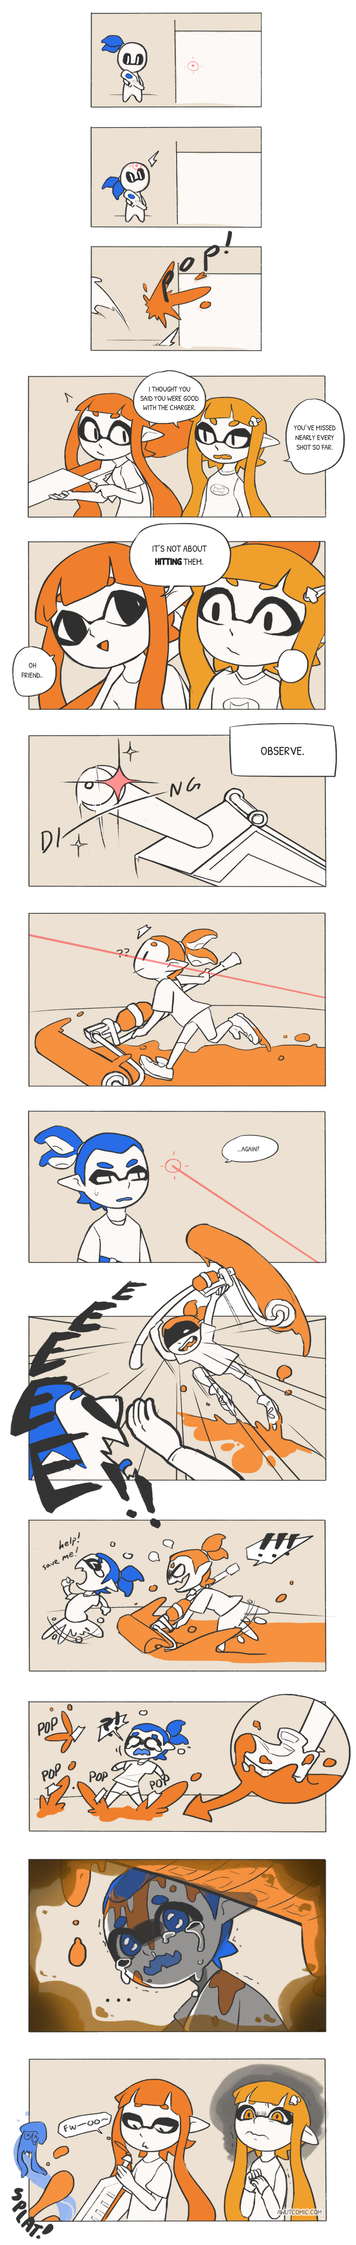 Splatoon: Charger Strats by vSock